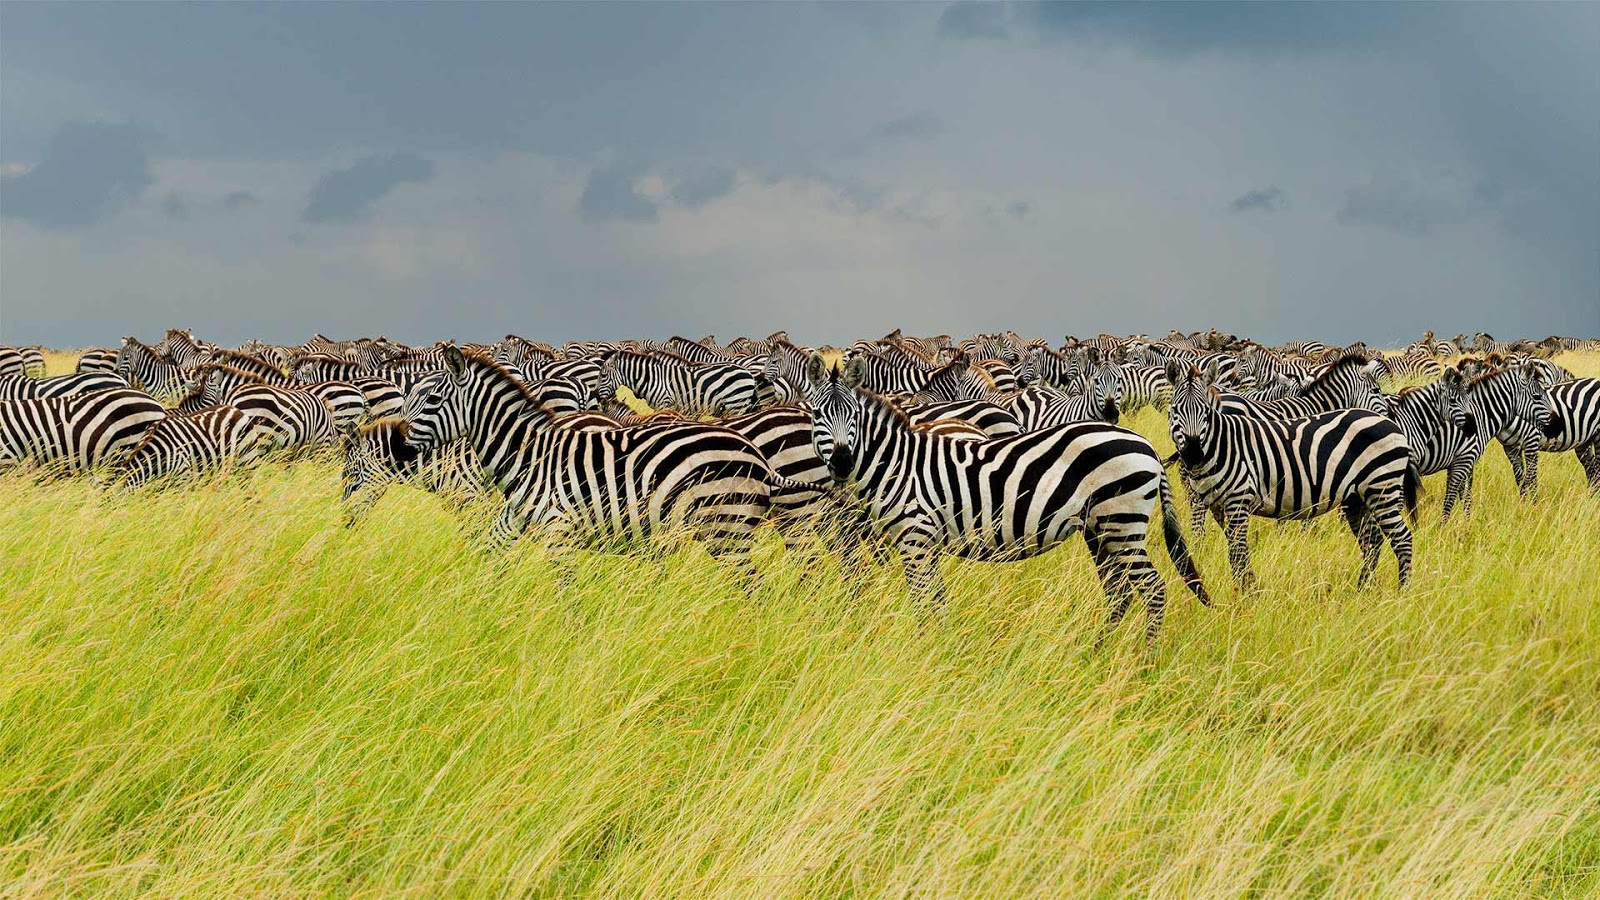 Zebras in Serengeti National Park, Tanzania © pchoui/Getty Images